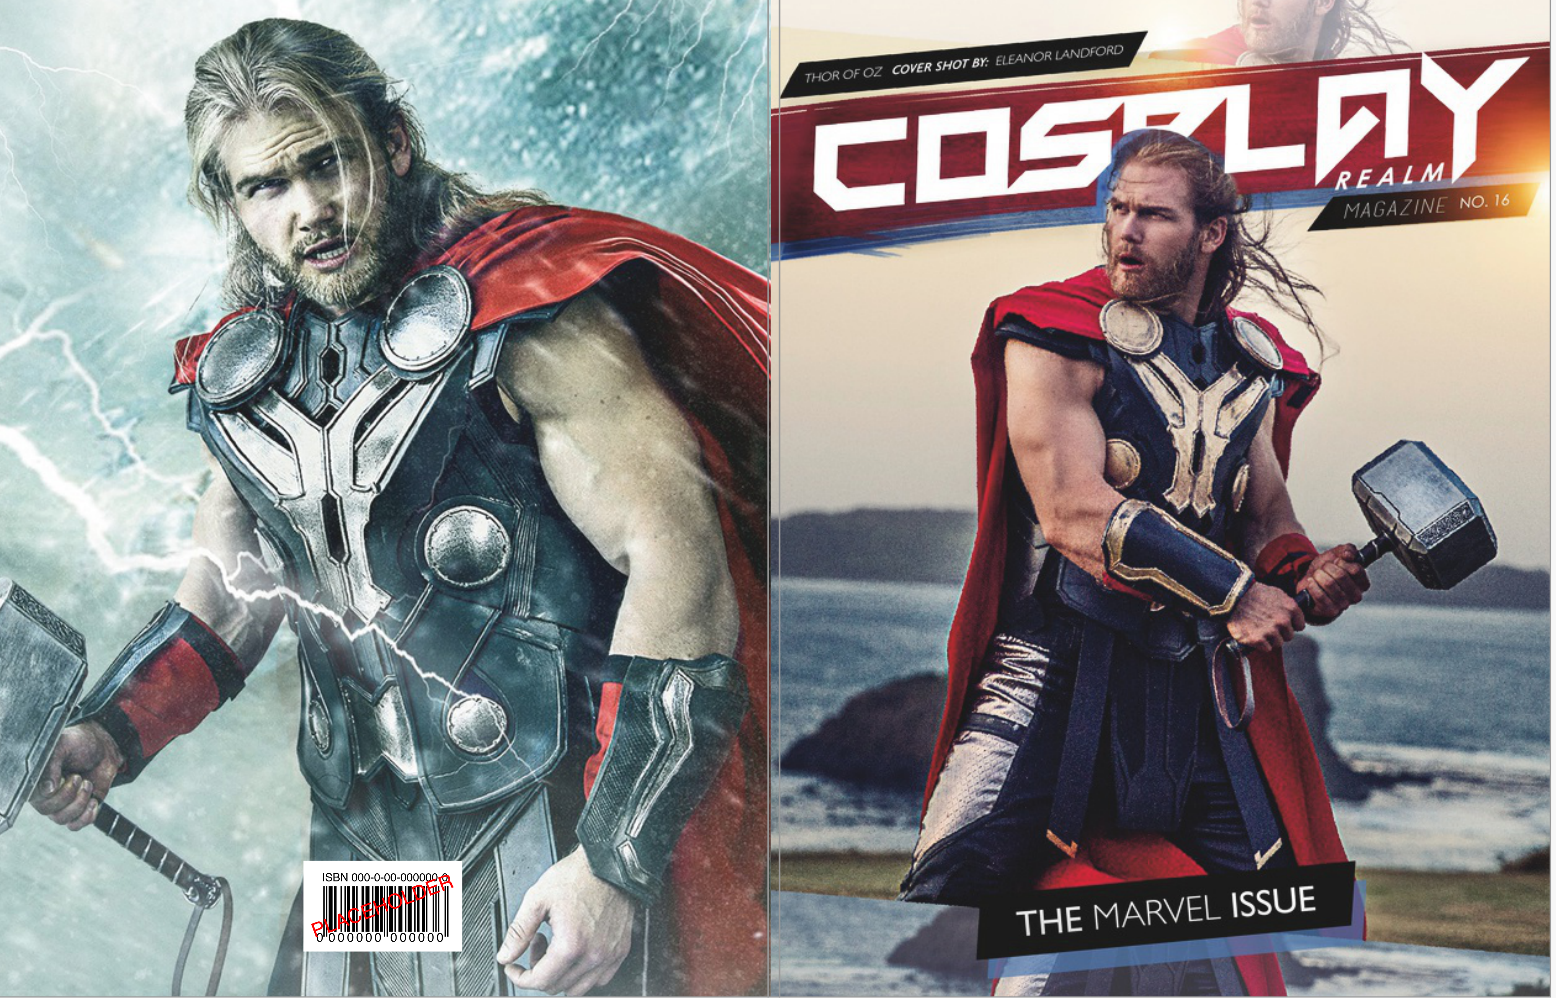 Cover: Thor of Oz shot by Eleanor Landford